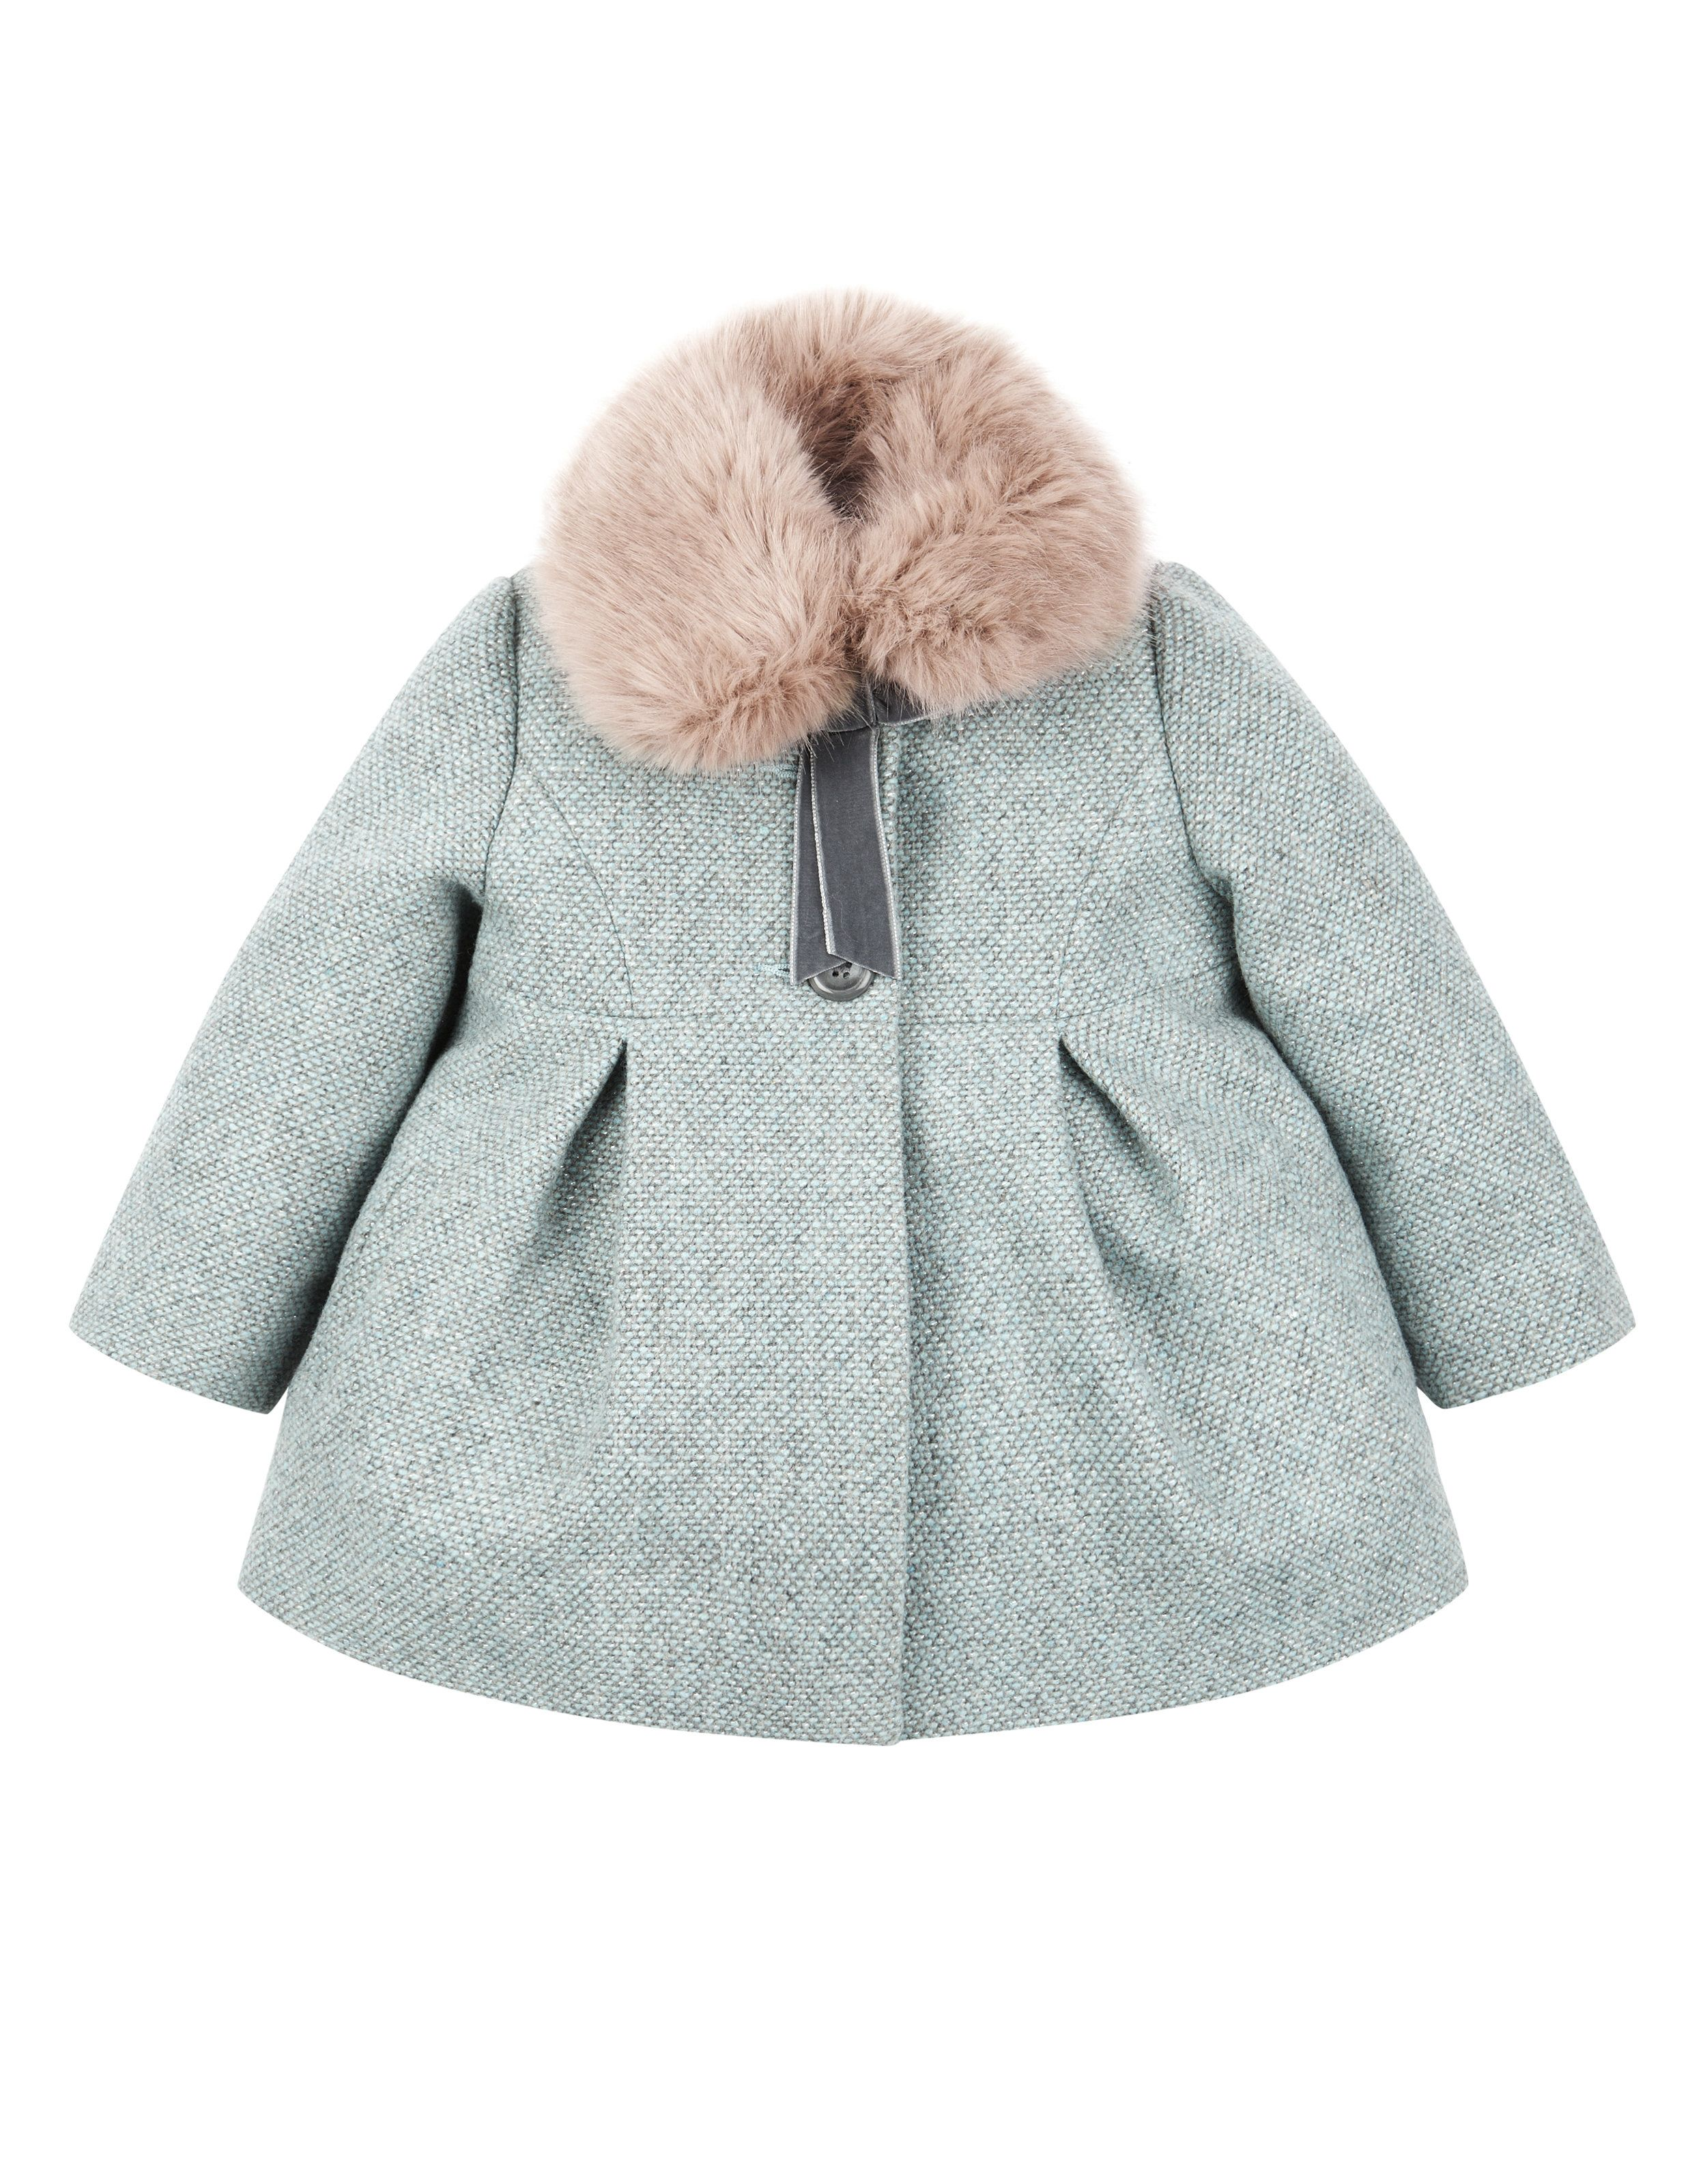 Baby Alice Aqua Tweed Coat | Blue - I would like it better without ...